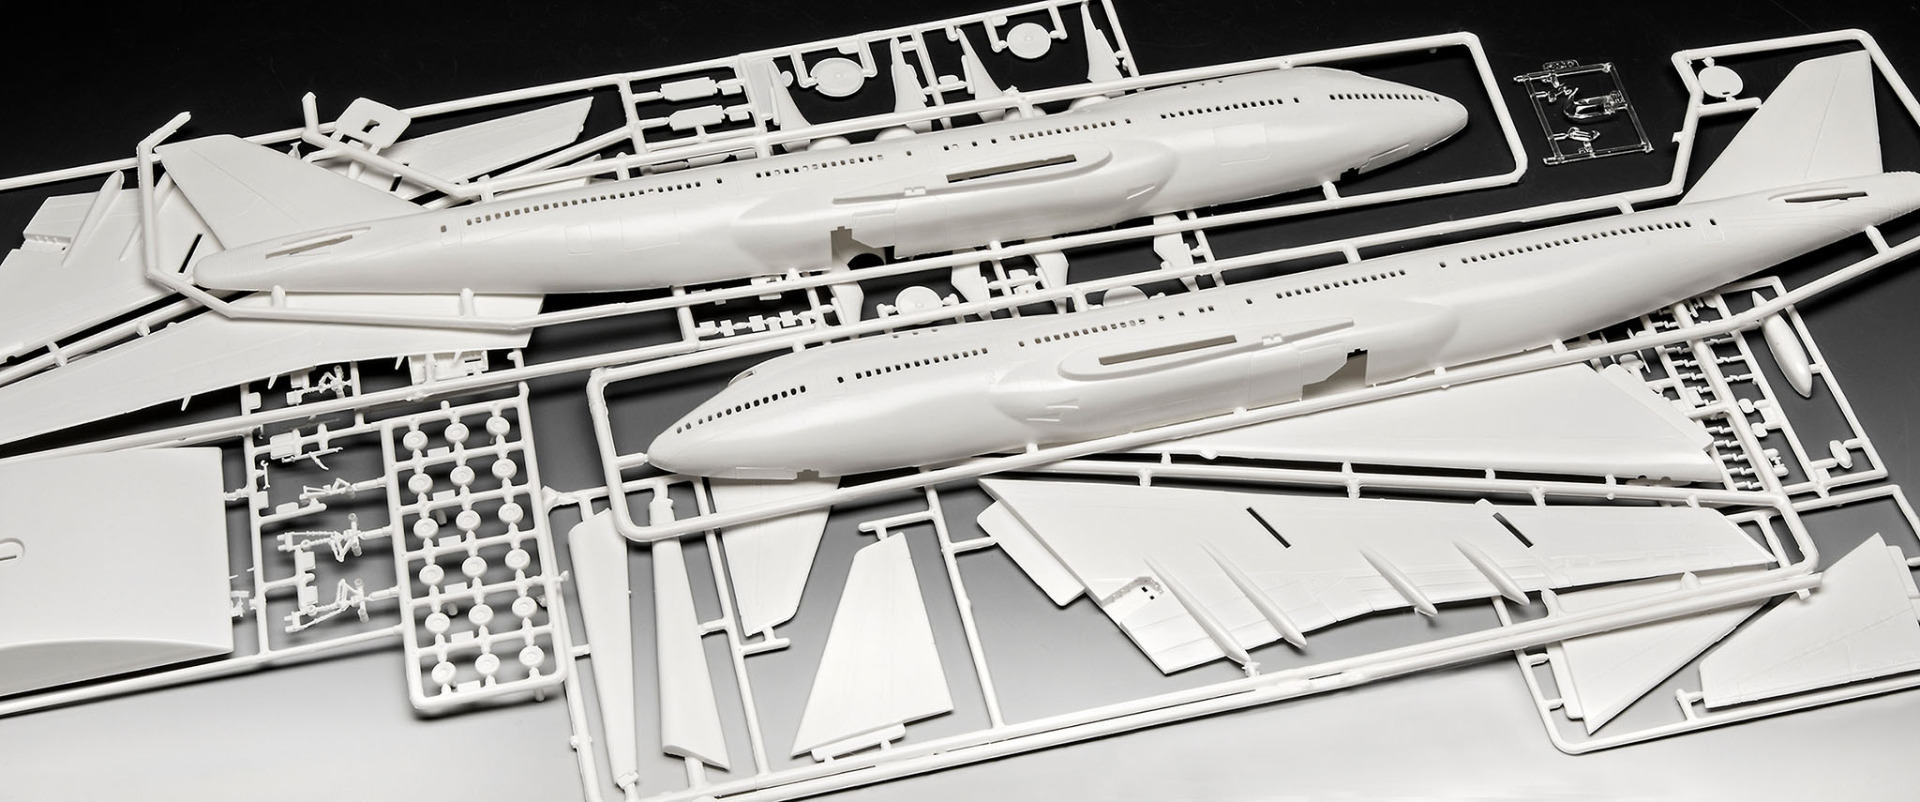 Revell Model Set Boeing 747-100 50th Anniversary Limited Edition 1:144